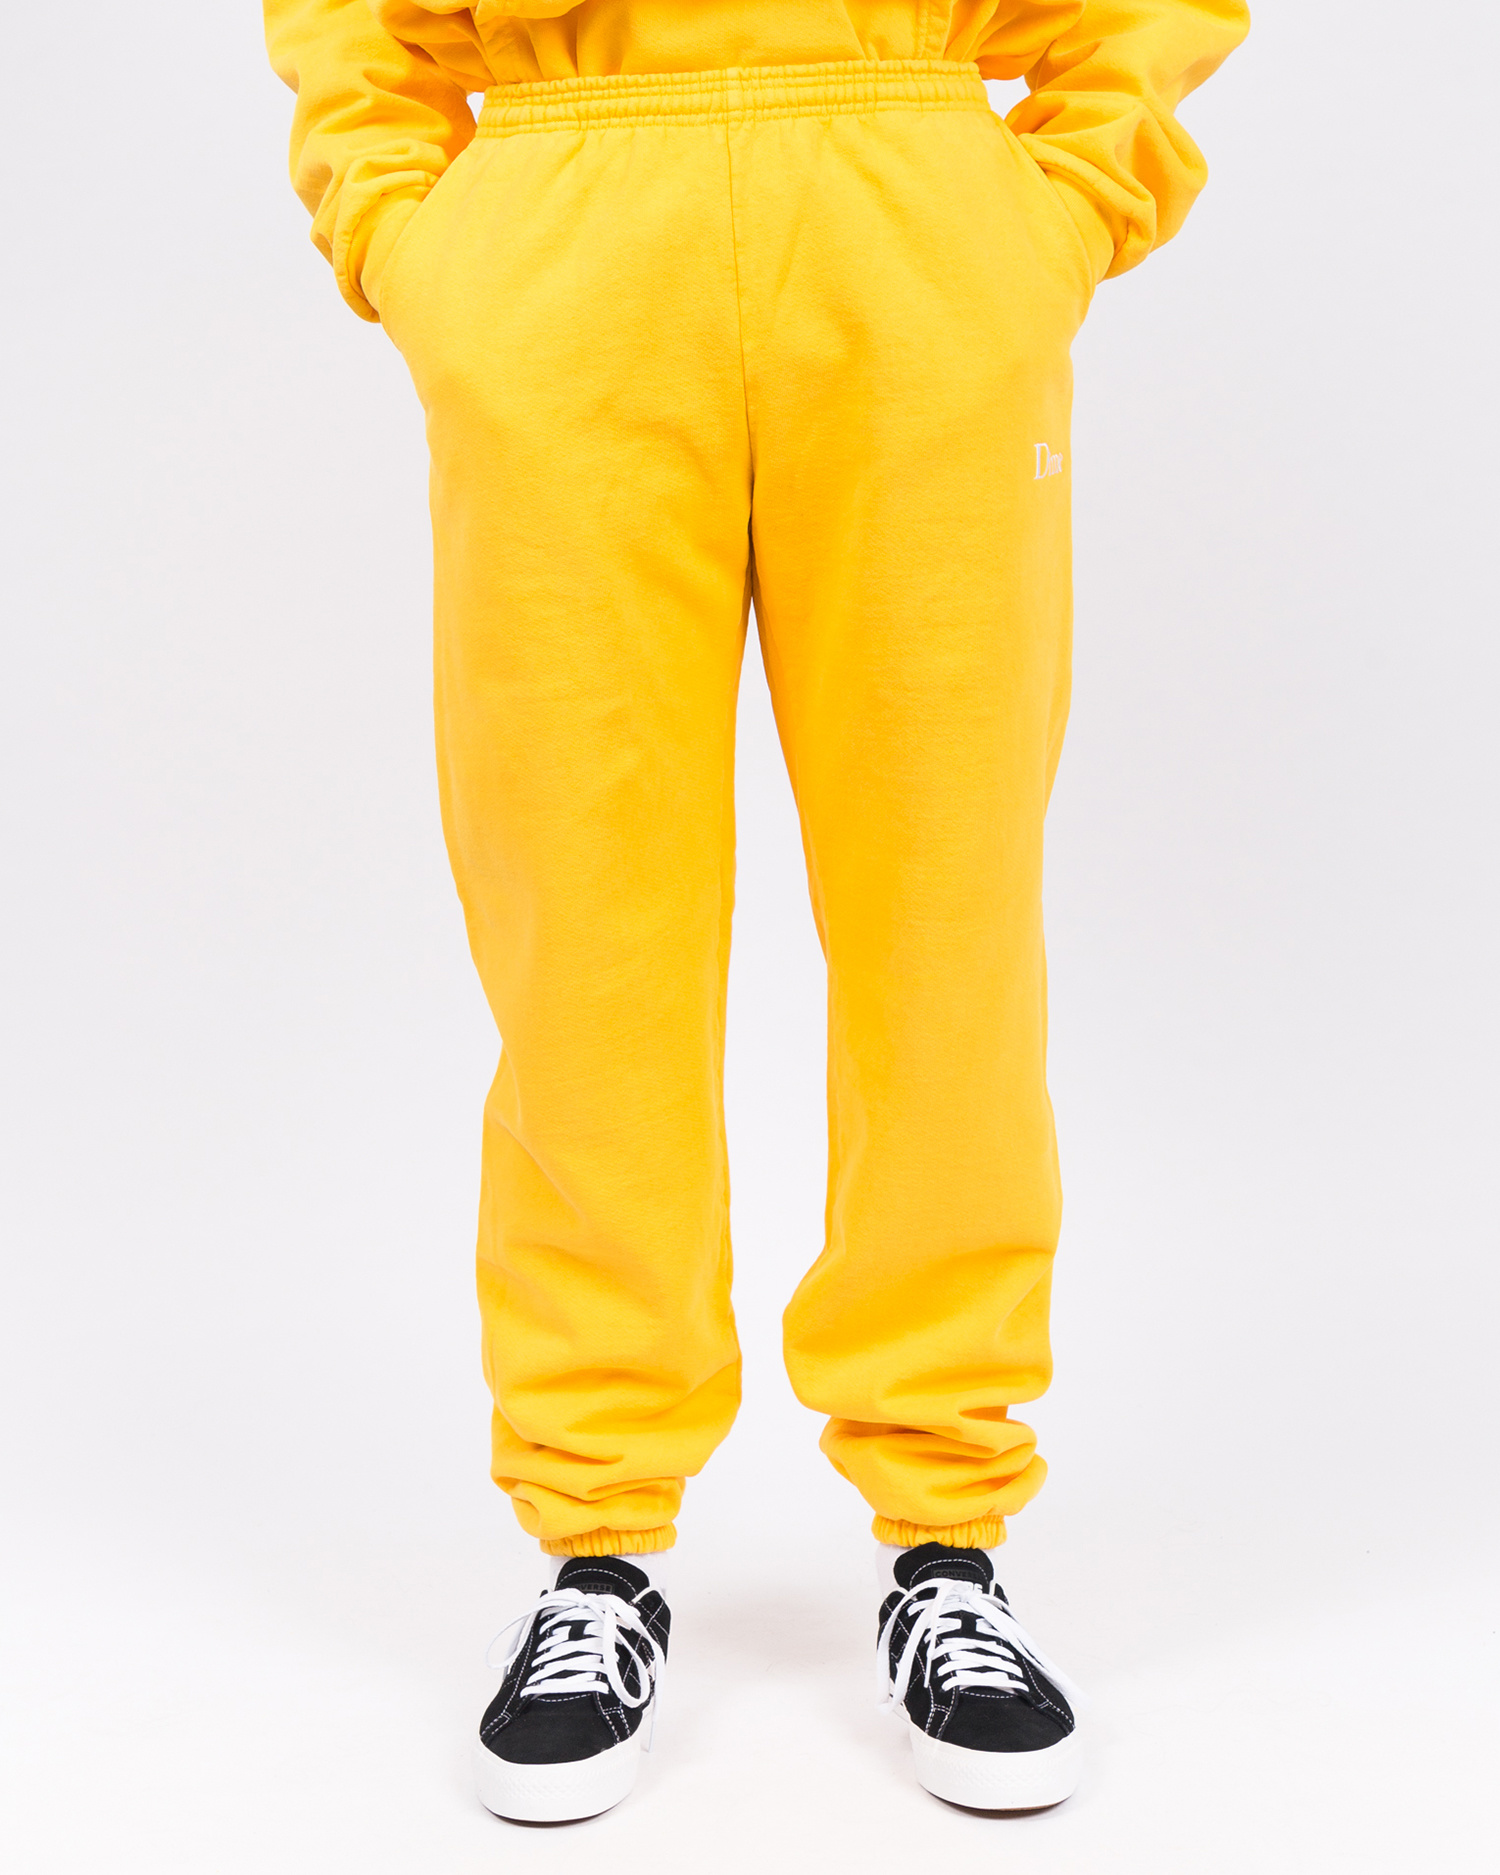 Dime Classic Embroidered Sweatpants Yellow